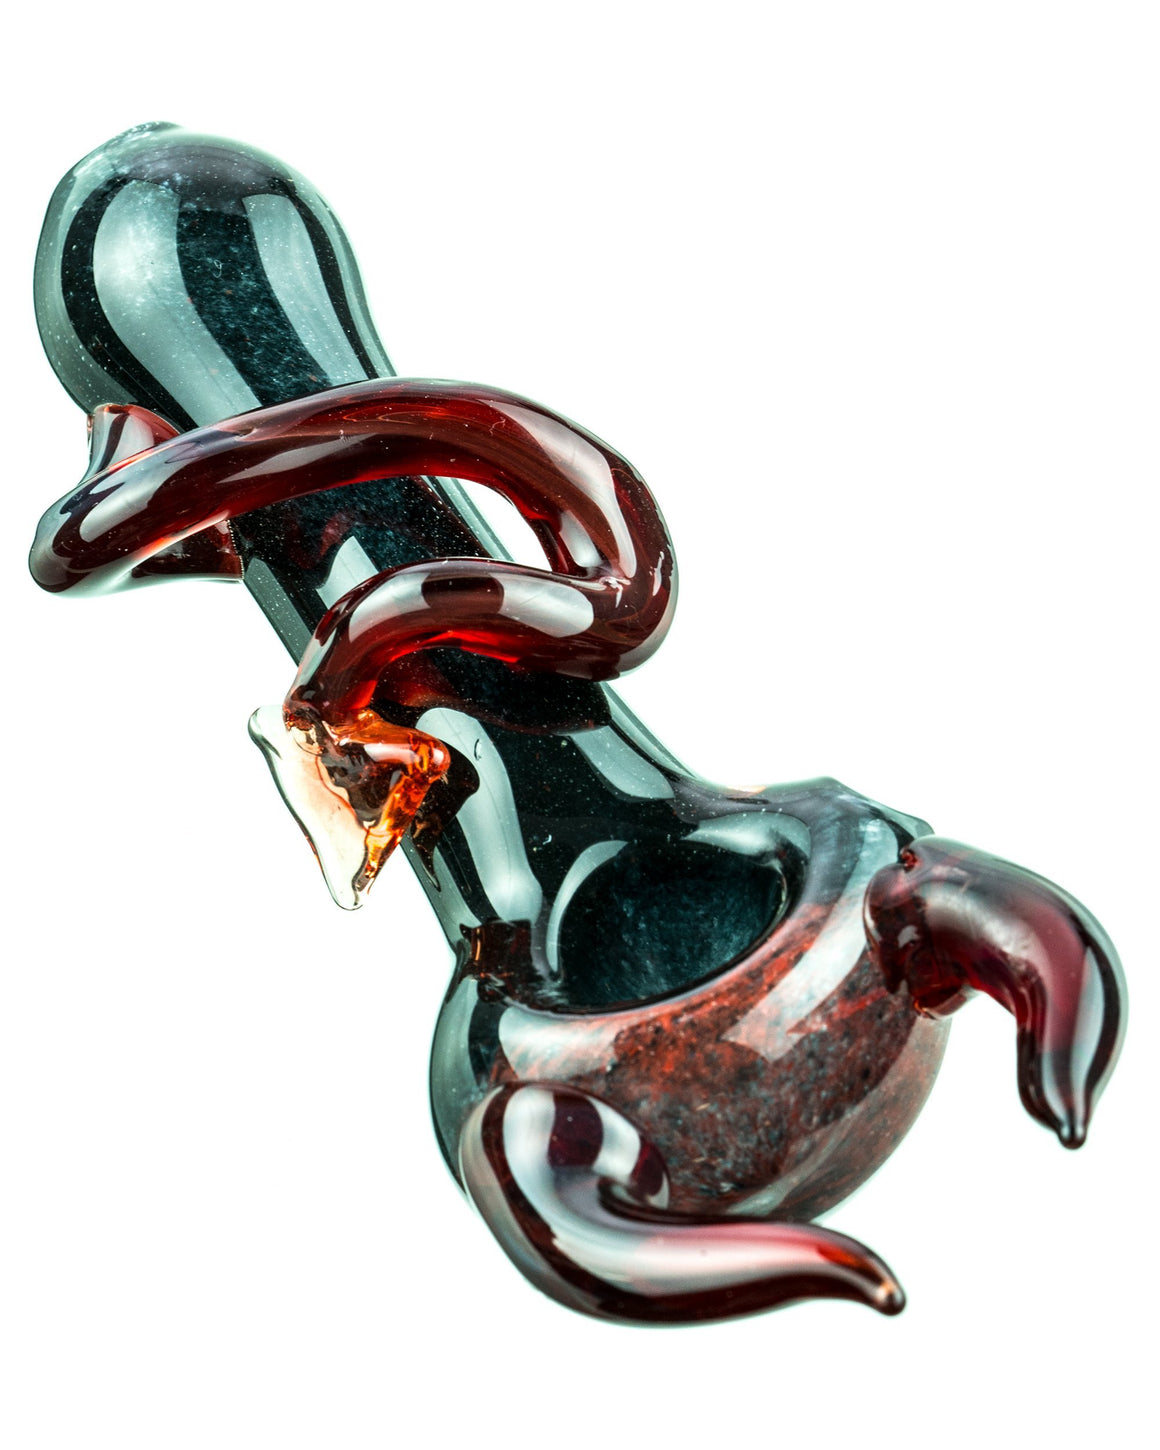 IMAGE OF A DEVIL HORNED HAND PIPE-FRONT